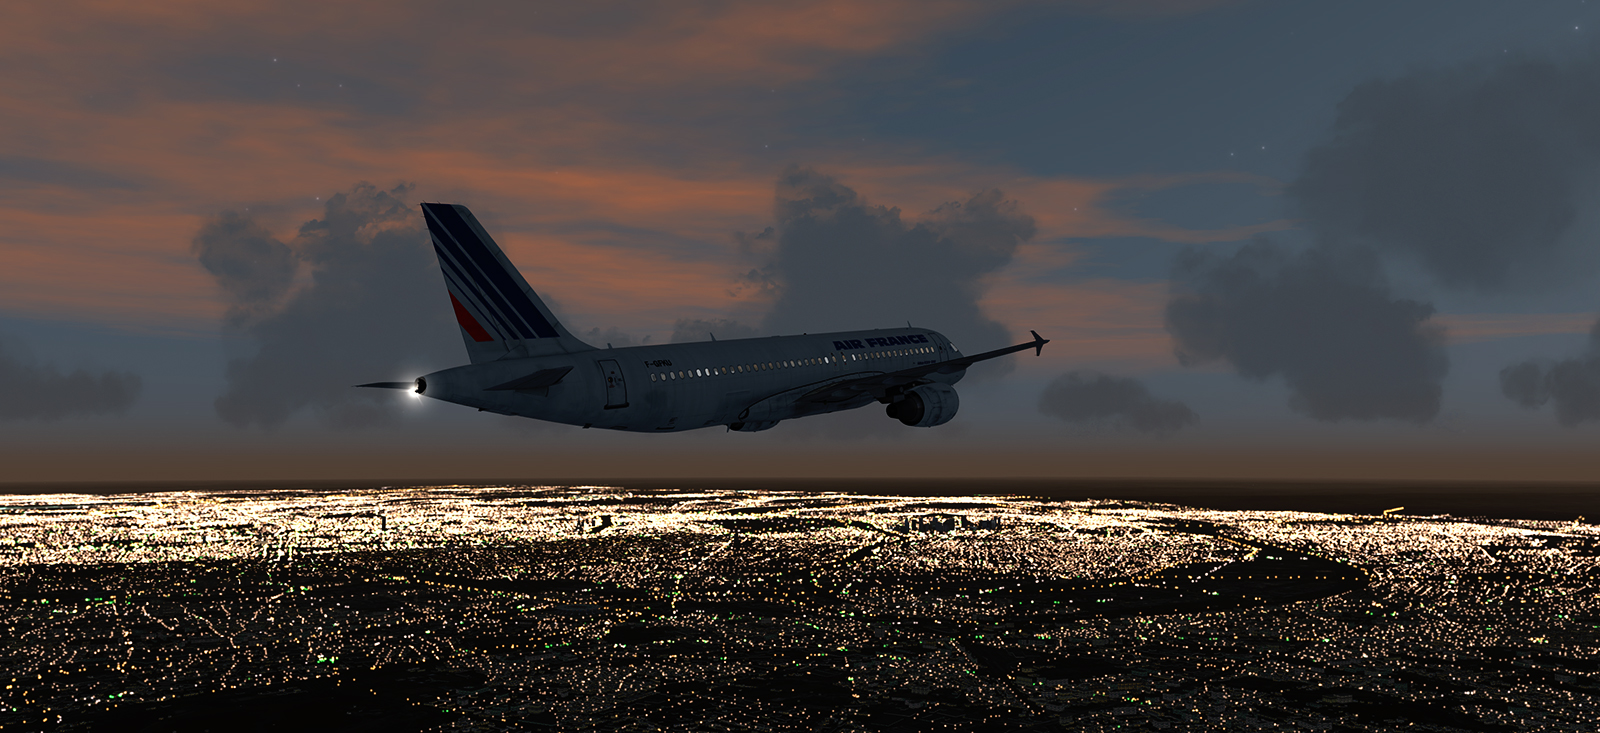 aerofly_fs_2_screenshot_23_20191005-2317